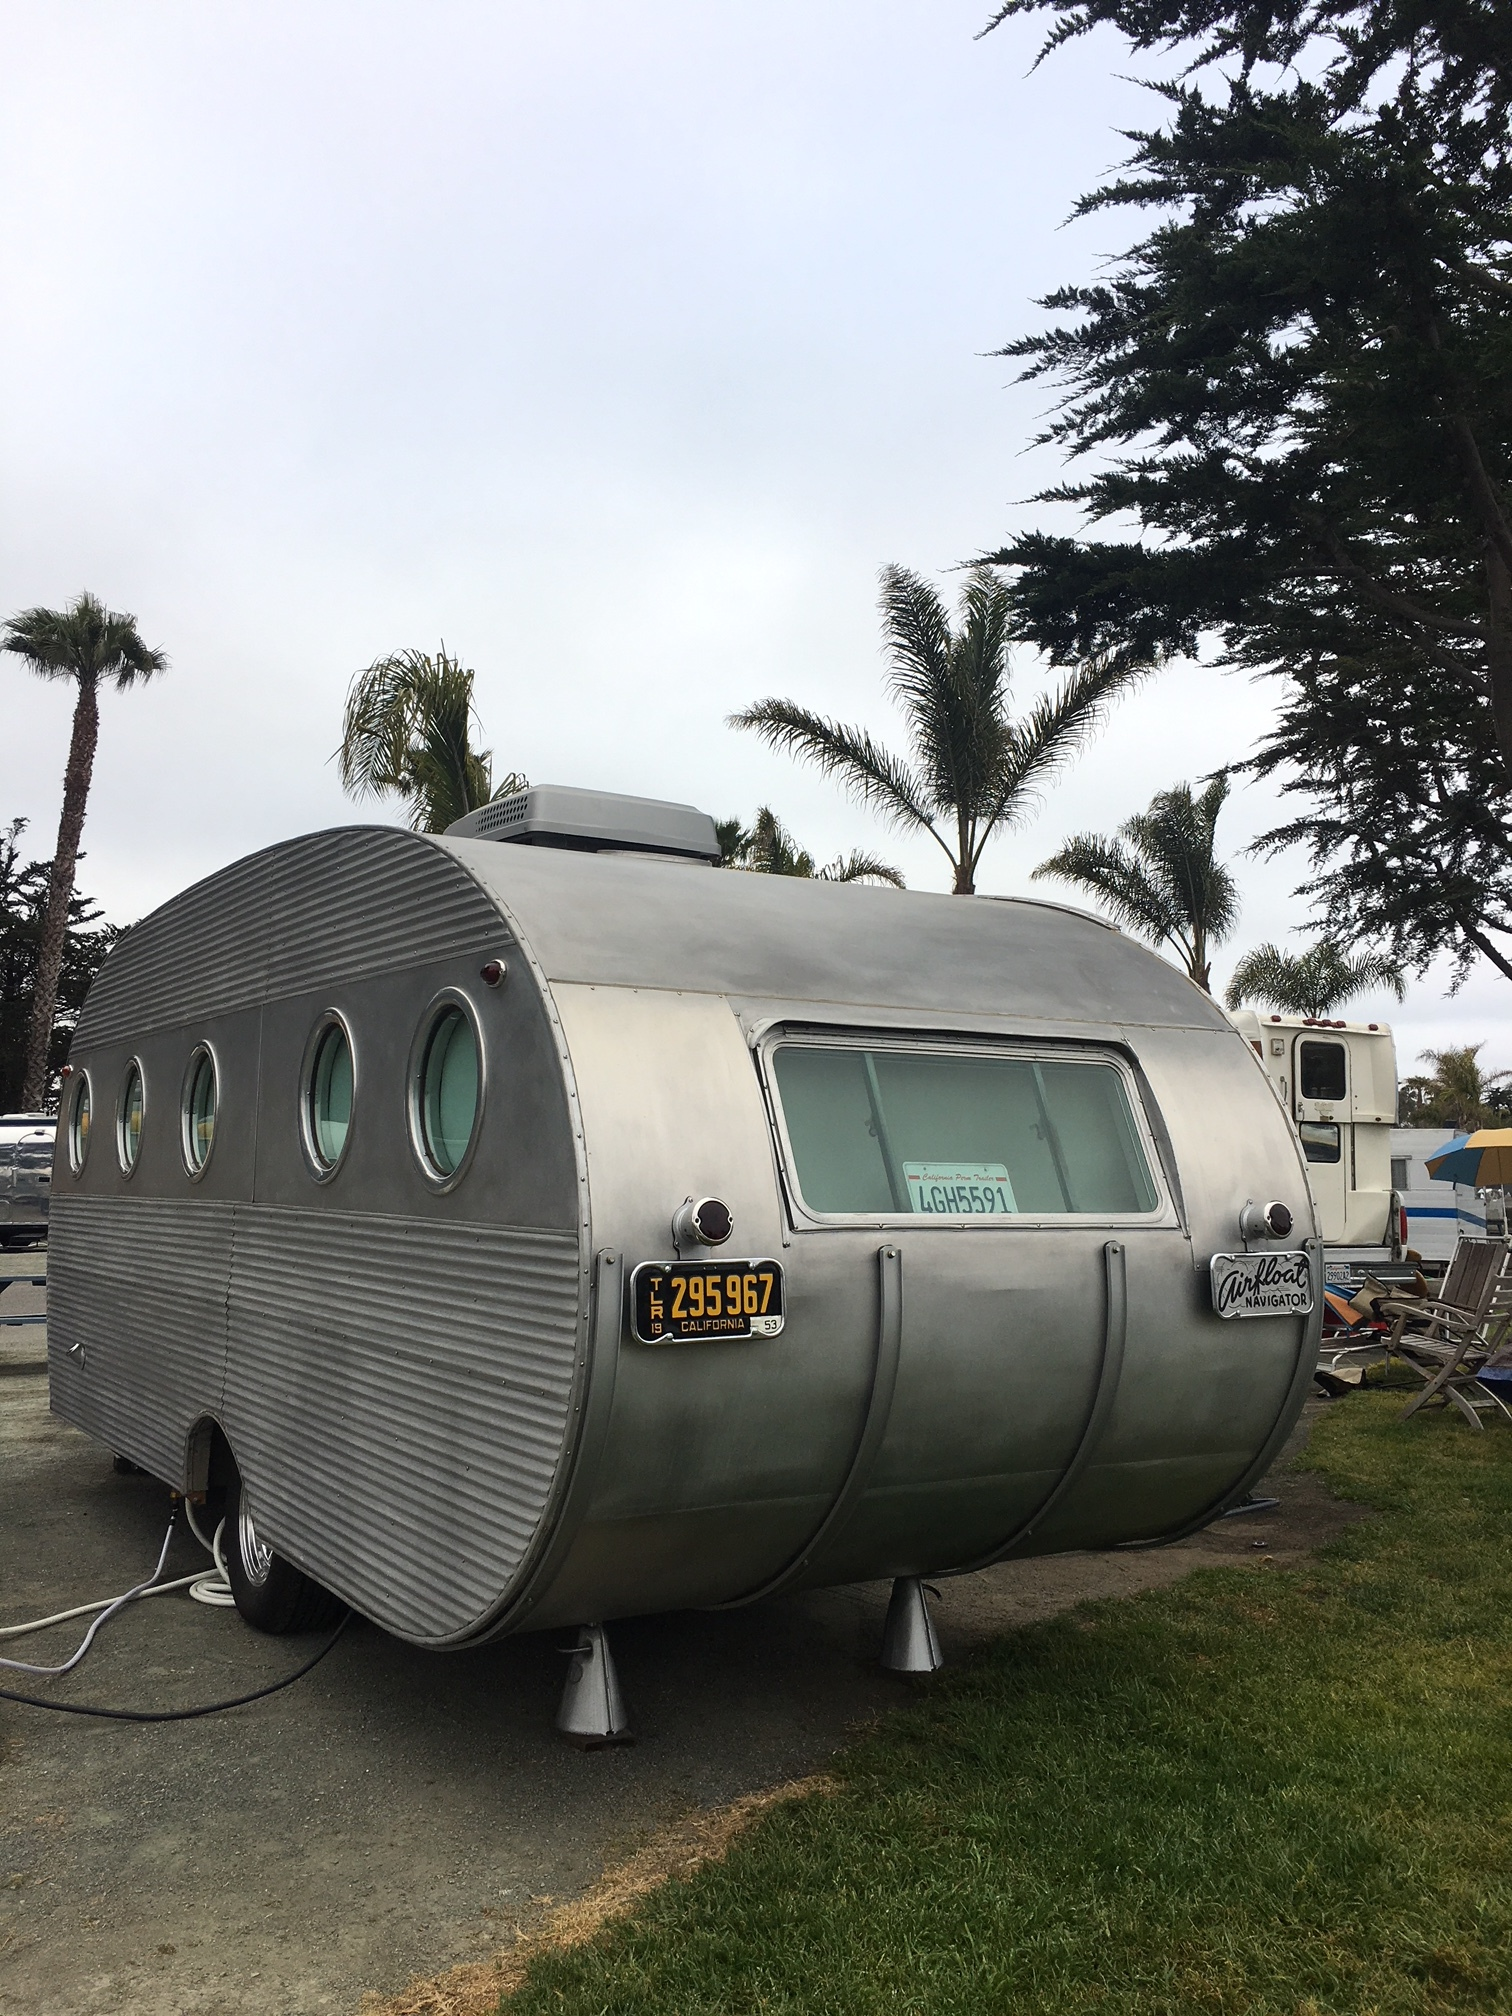 A 1950 Airfloat Vintage Trailer!